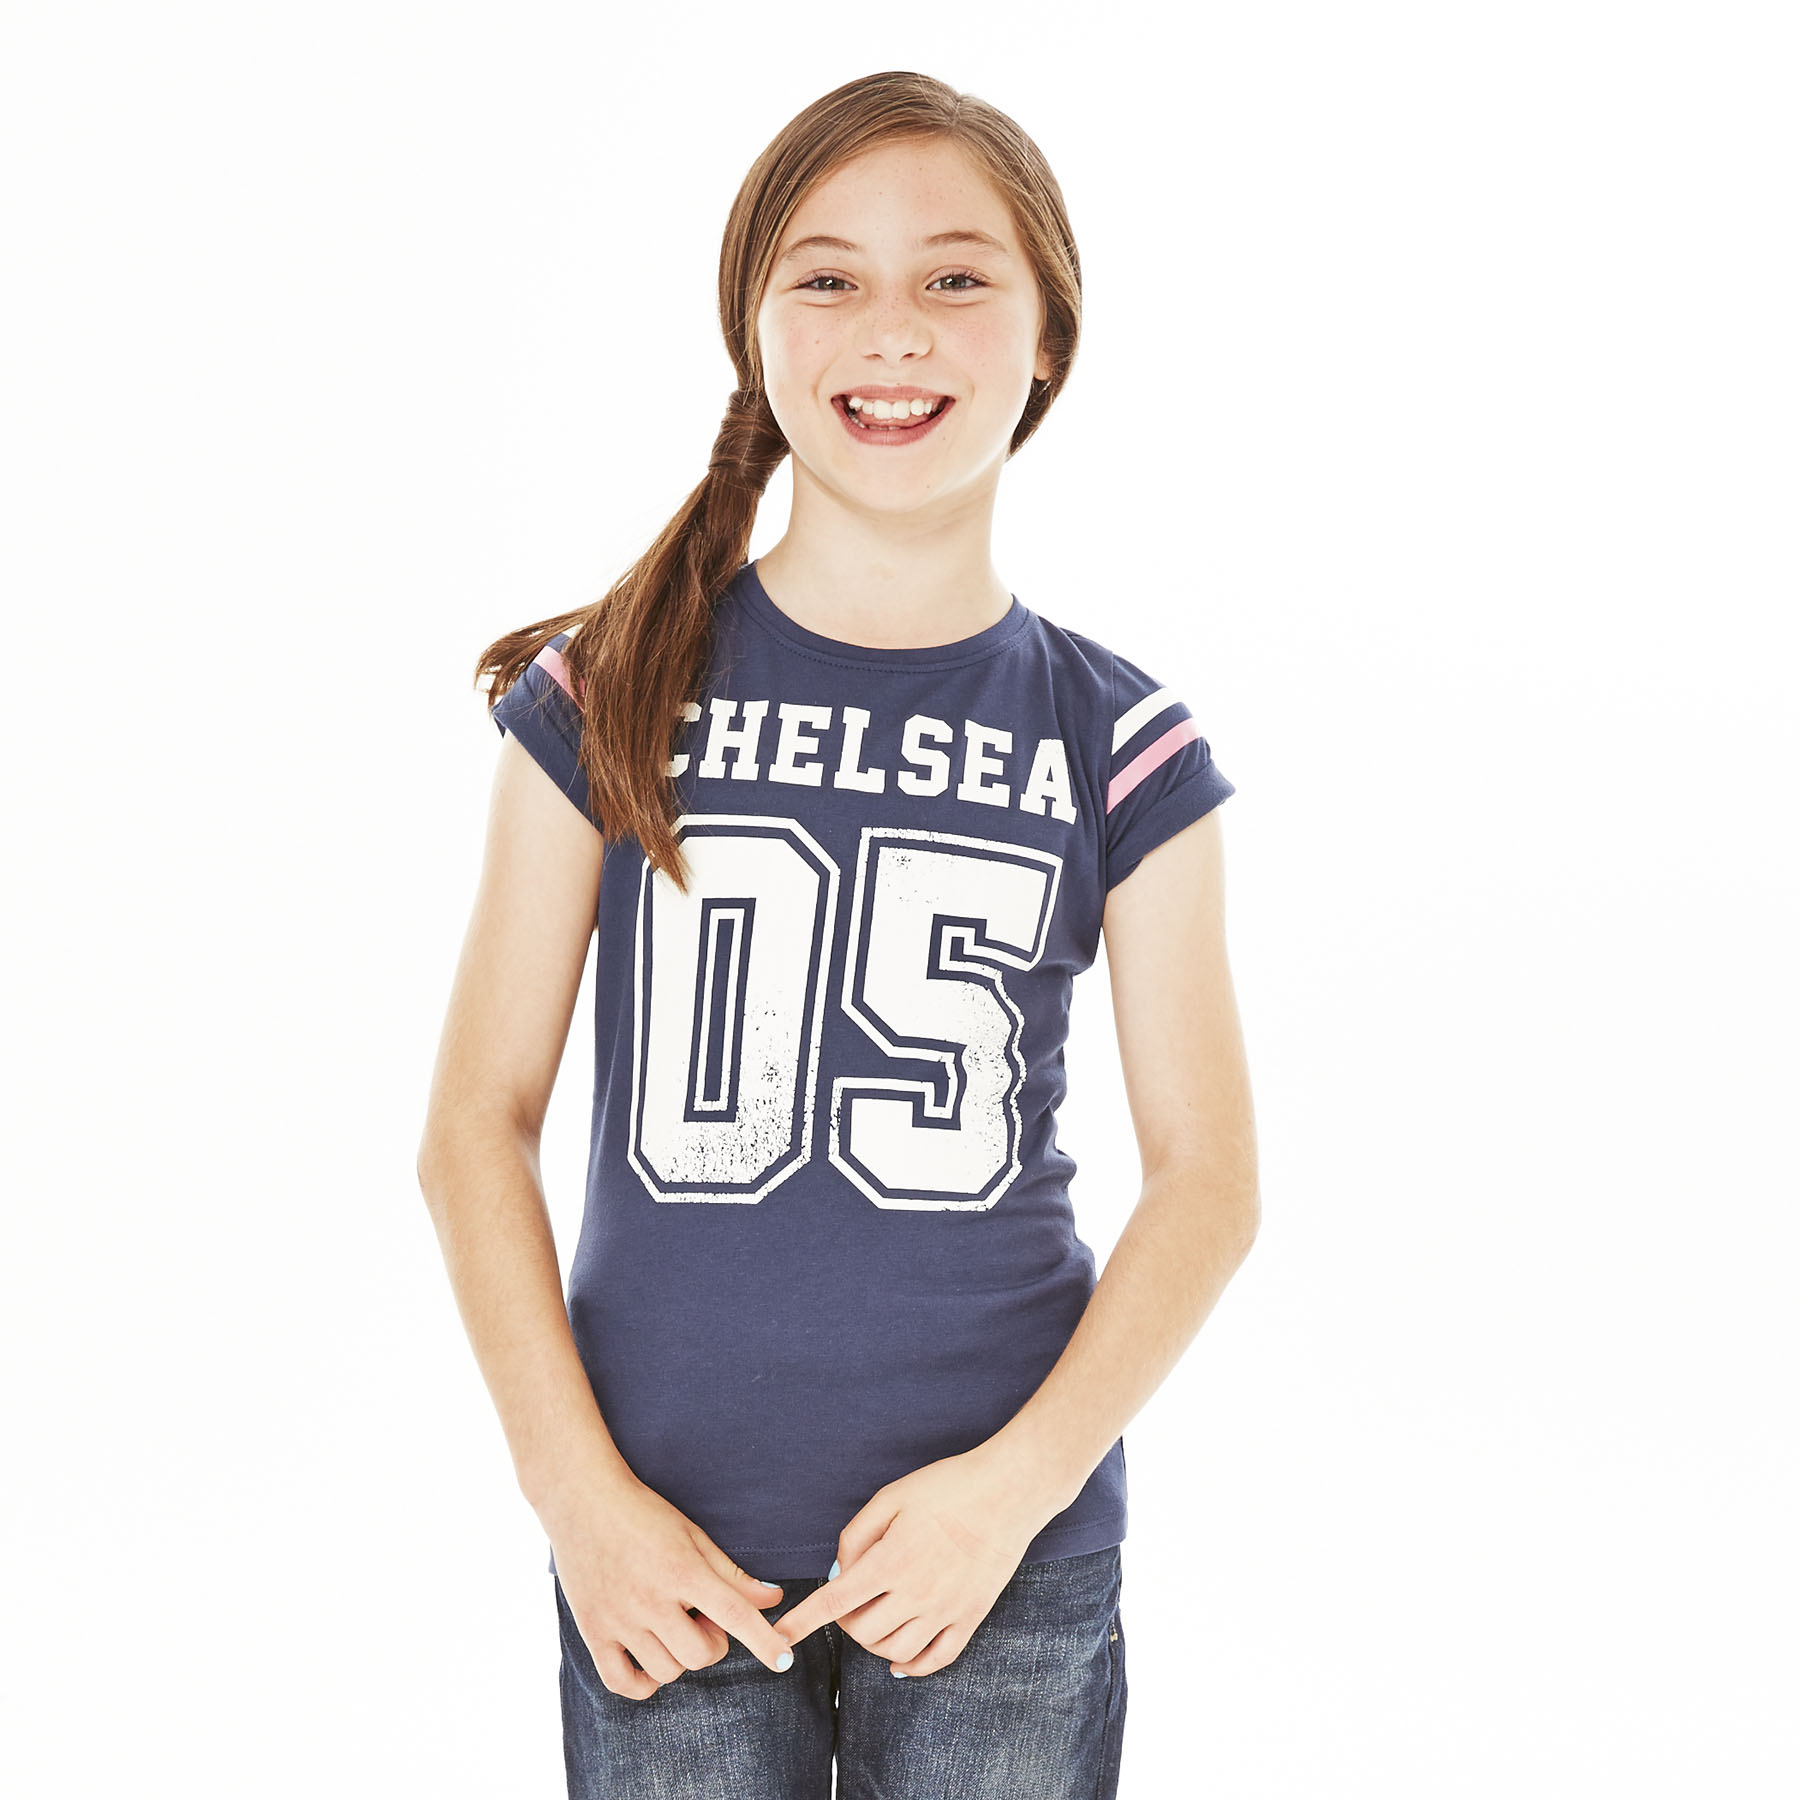 Chelsea Distressed T-Shirt - Navy - Girls